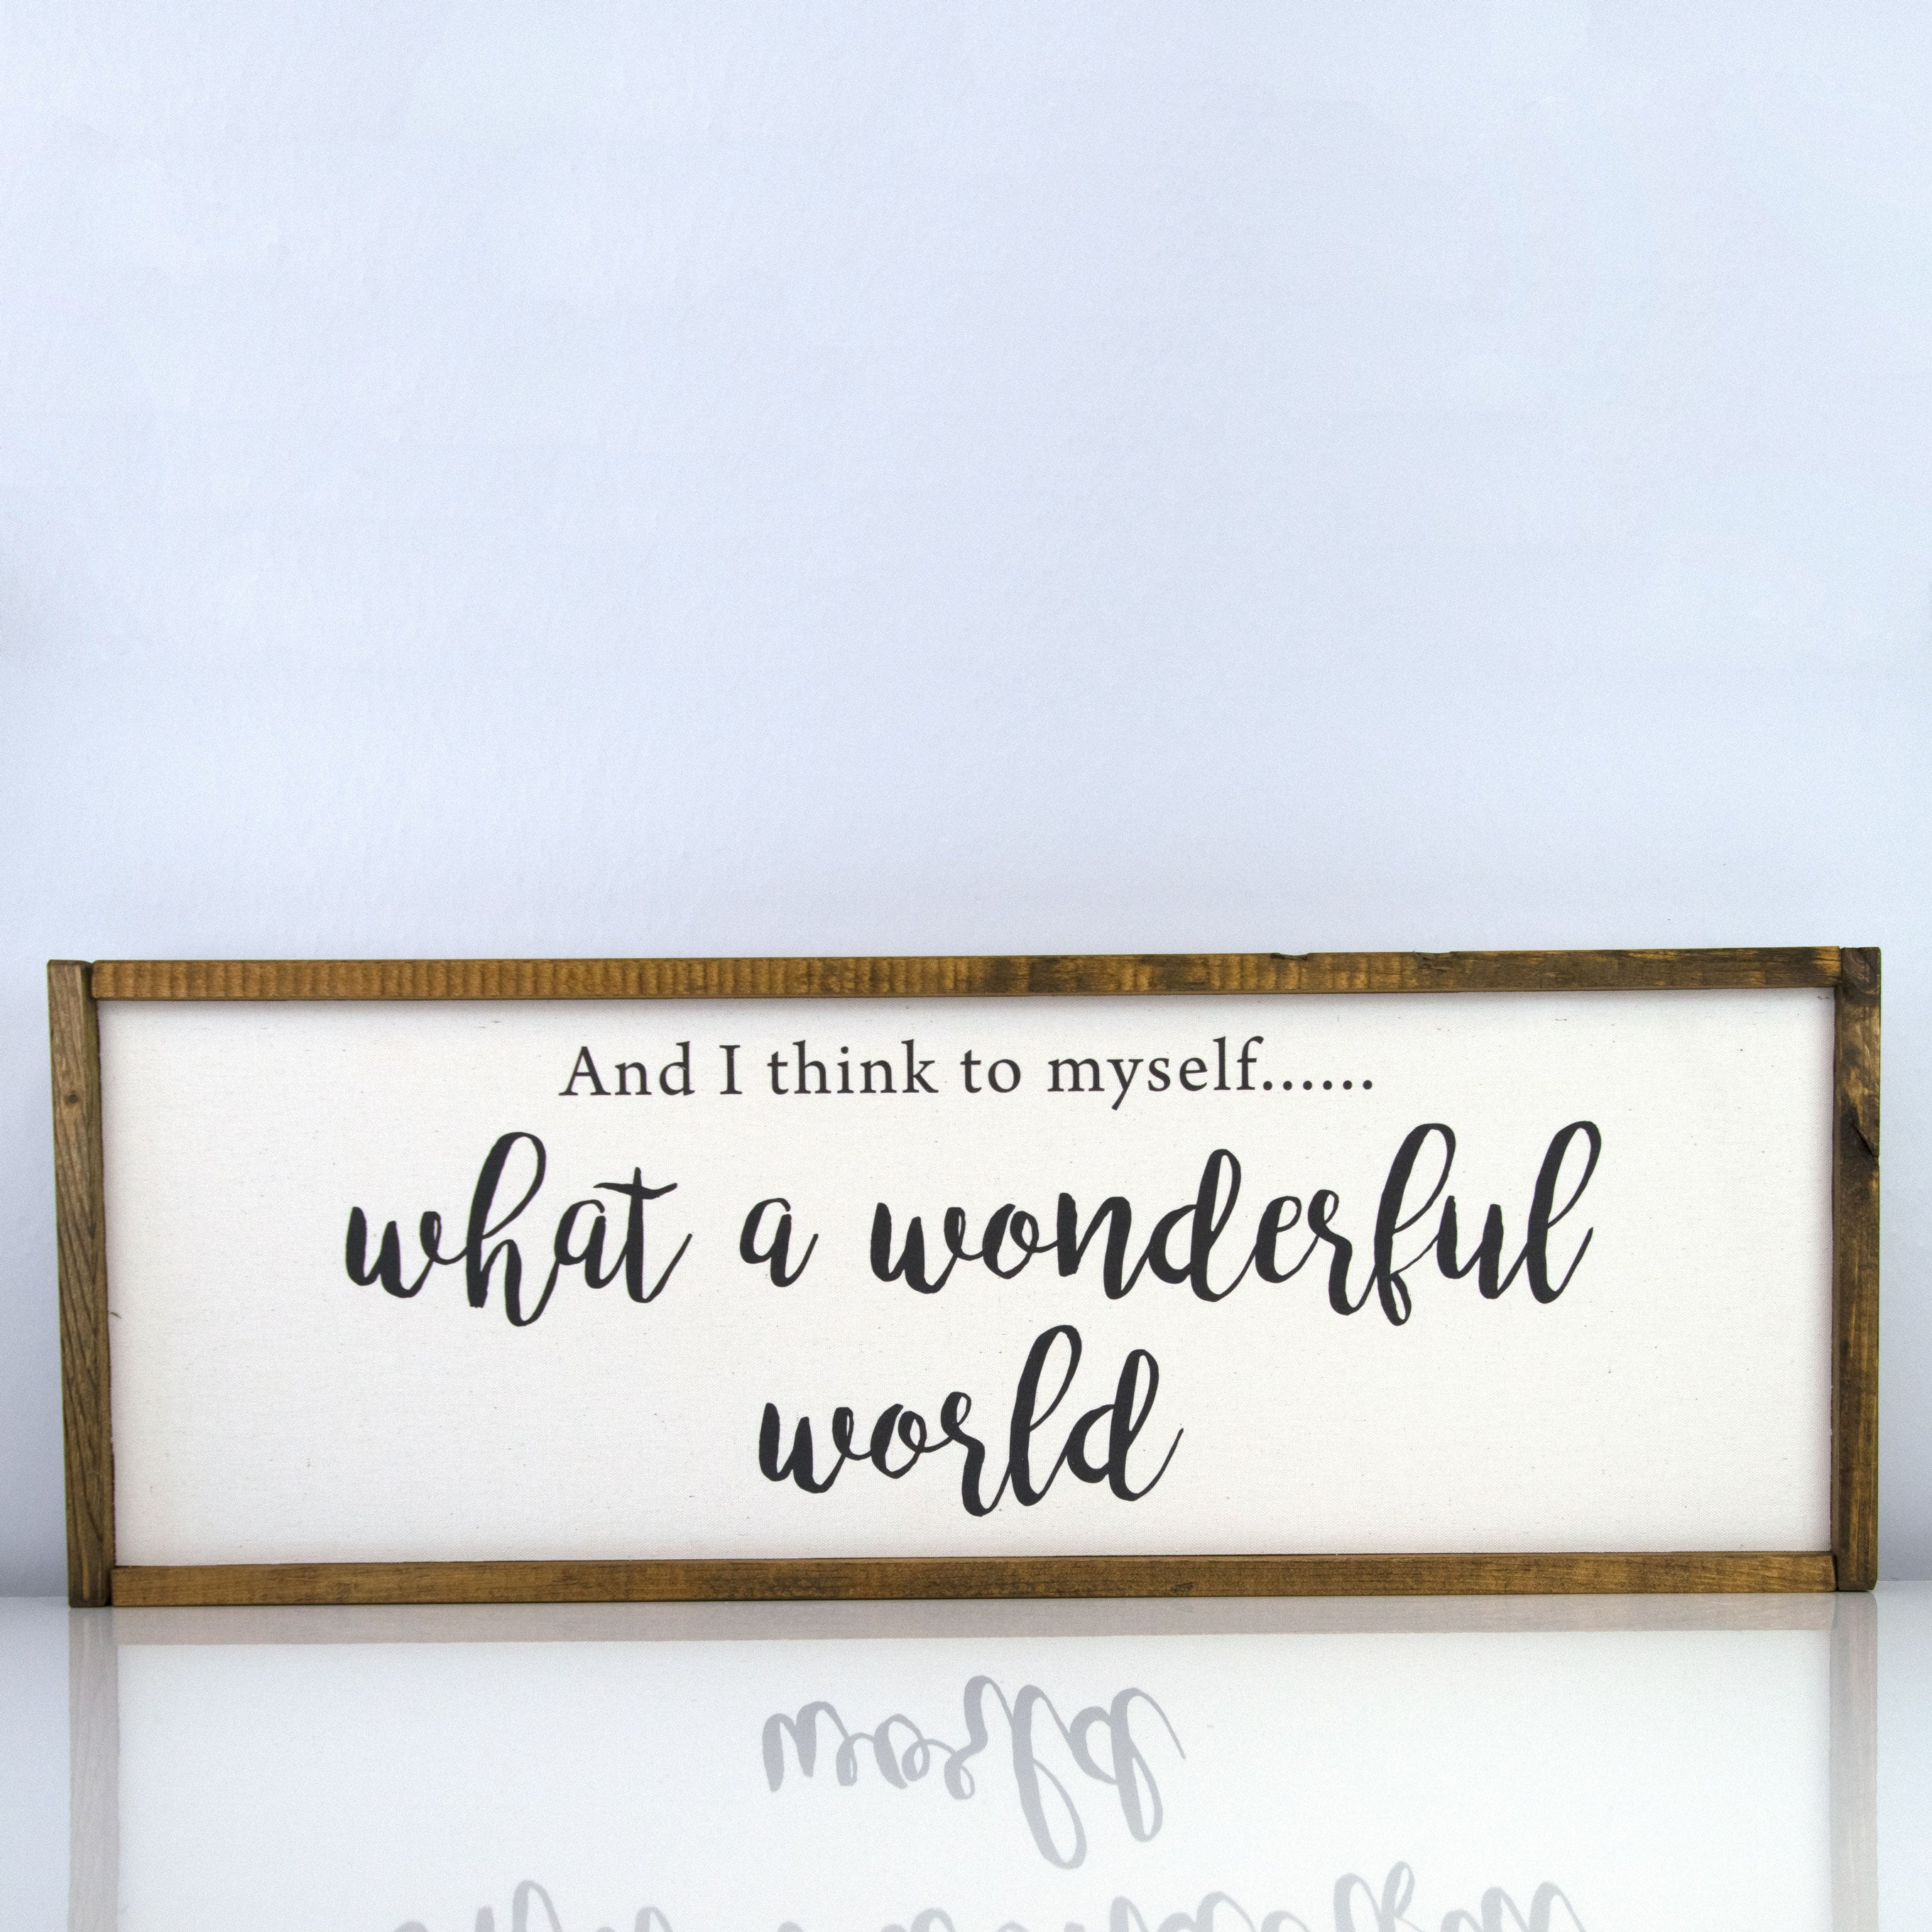 Wonderful World | 10 x 30 Classic